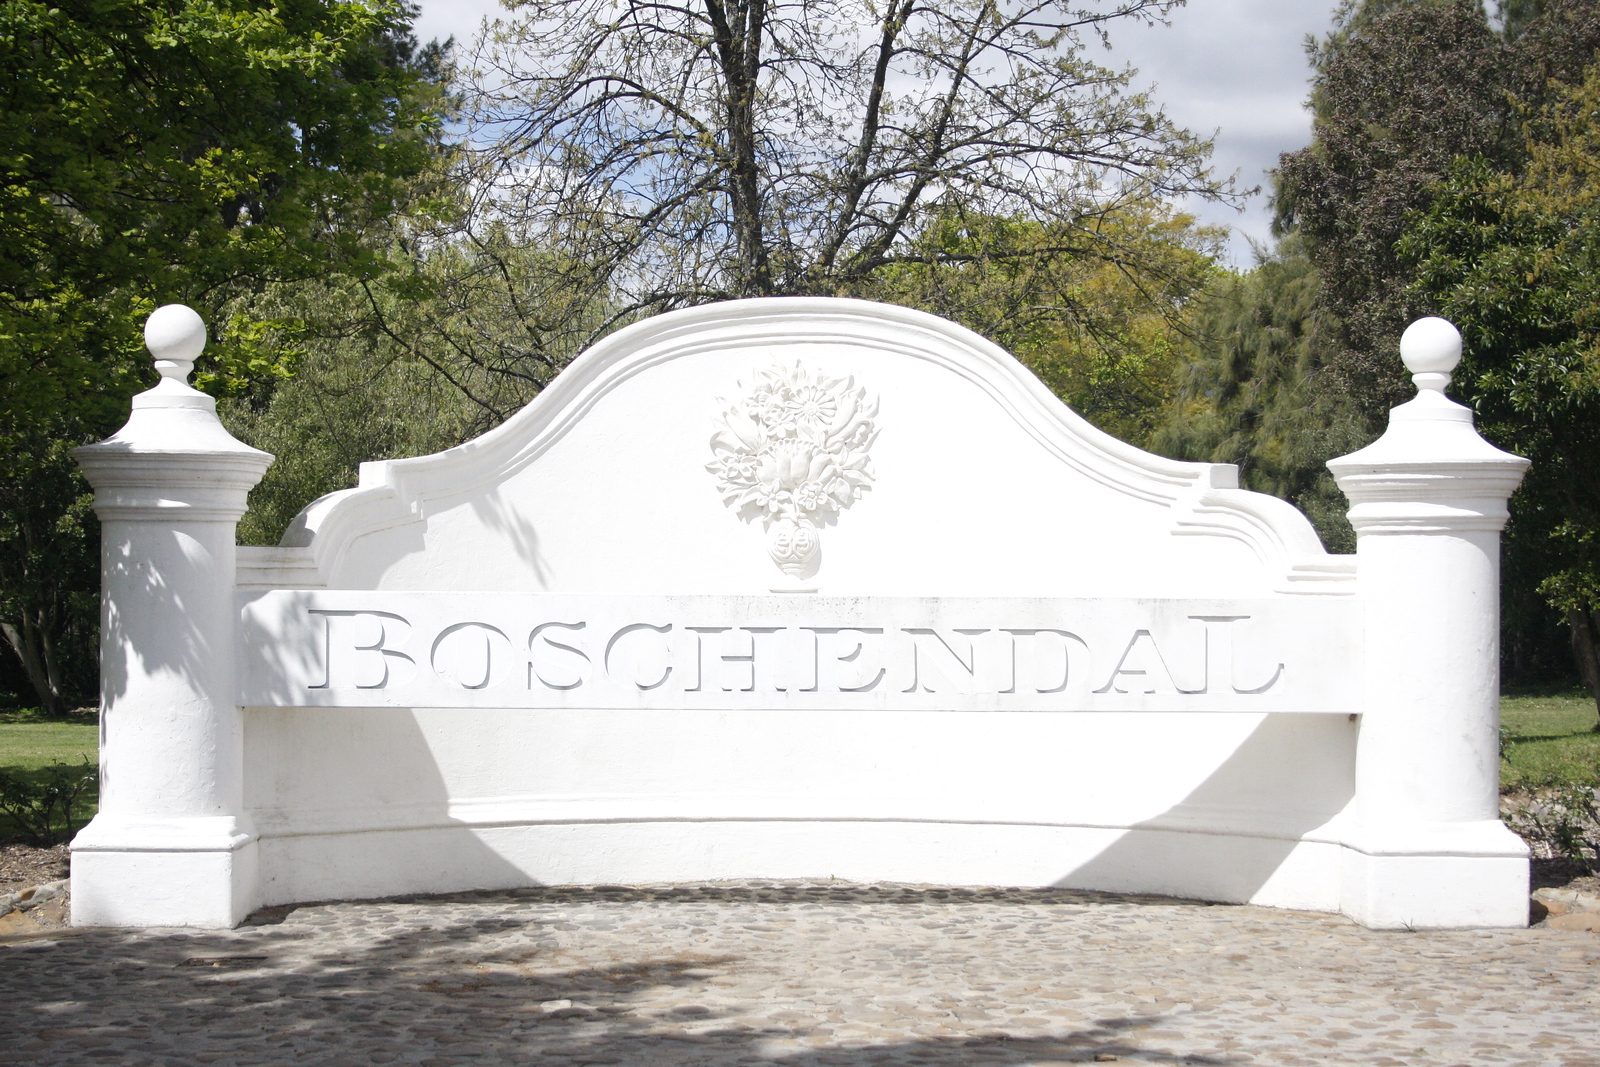 Next stop was Boschlendal which we just looked around and kept going.